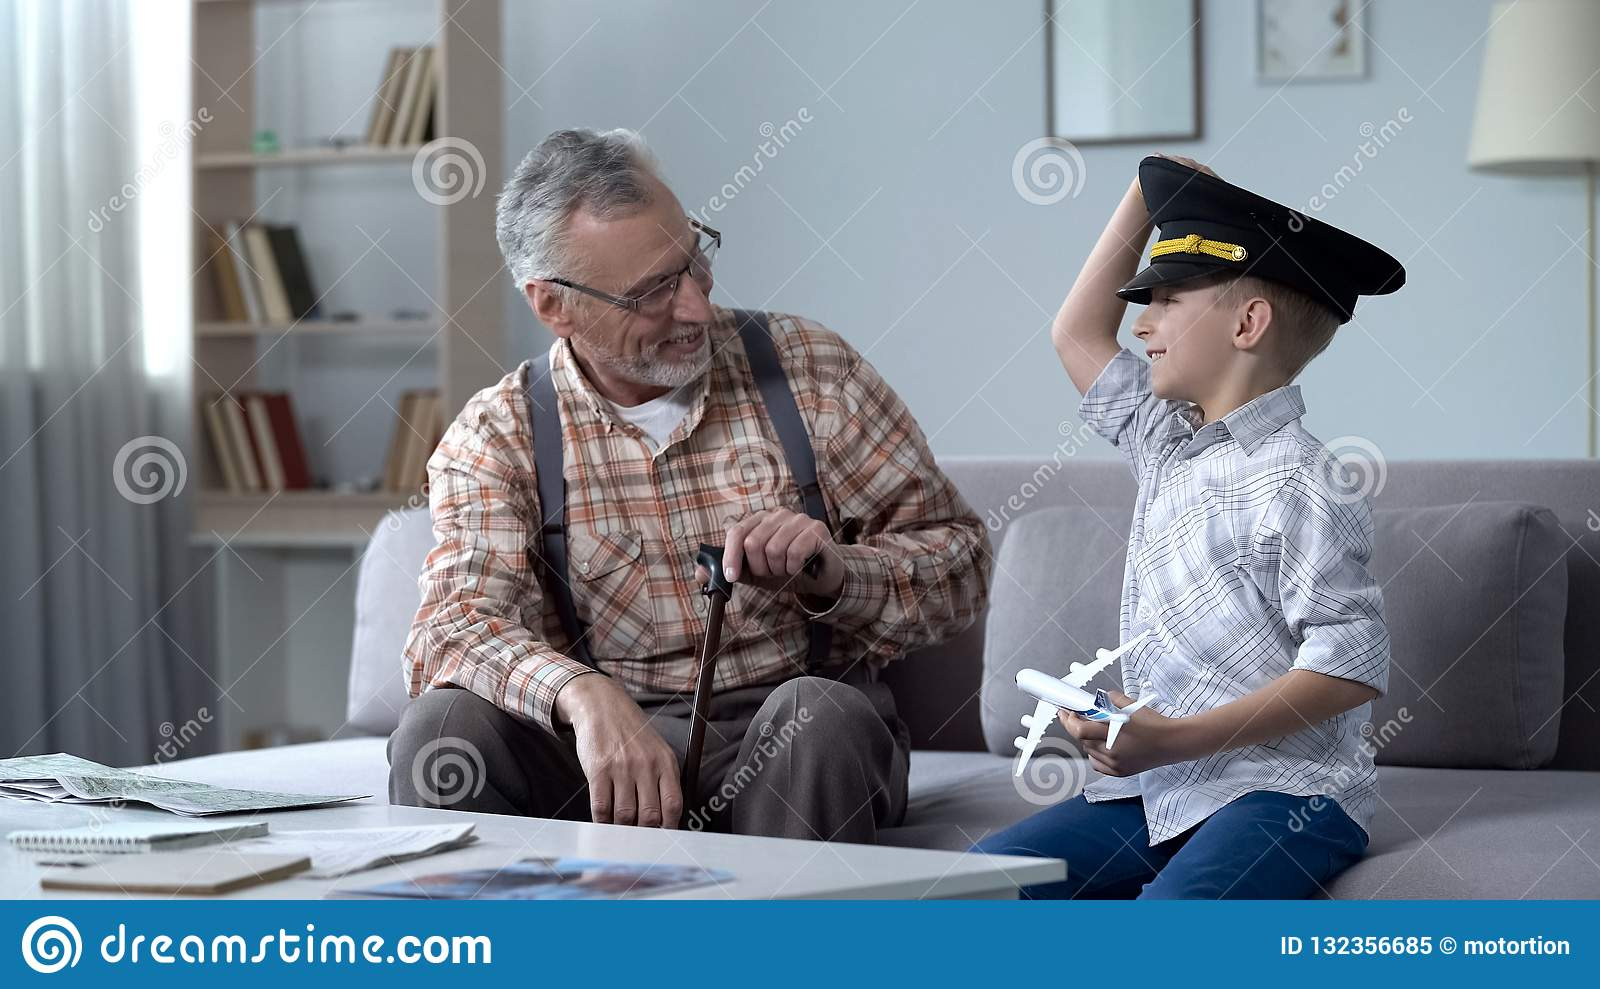 Happy boy playing with toy airplane, grandfather former pilot proud of grandson